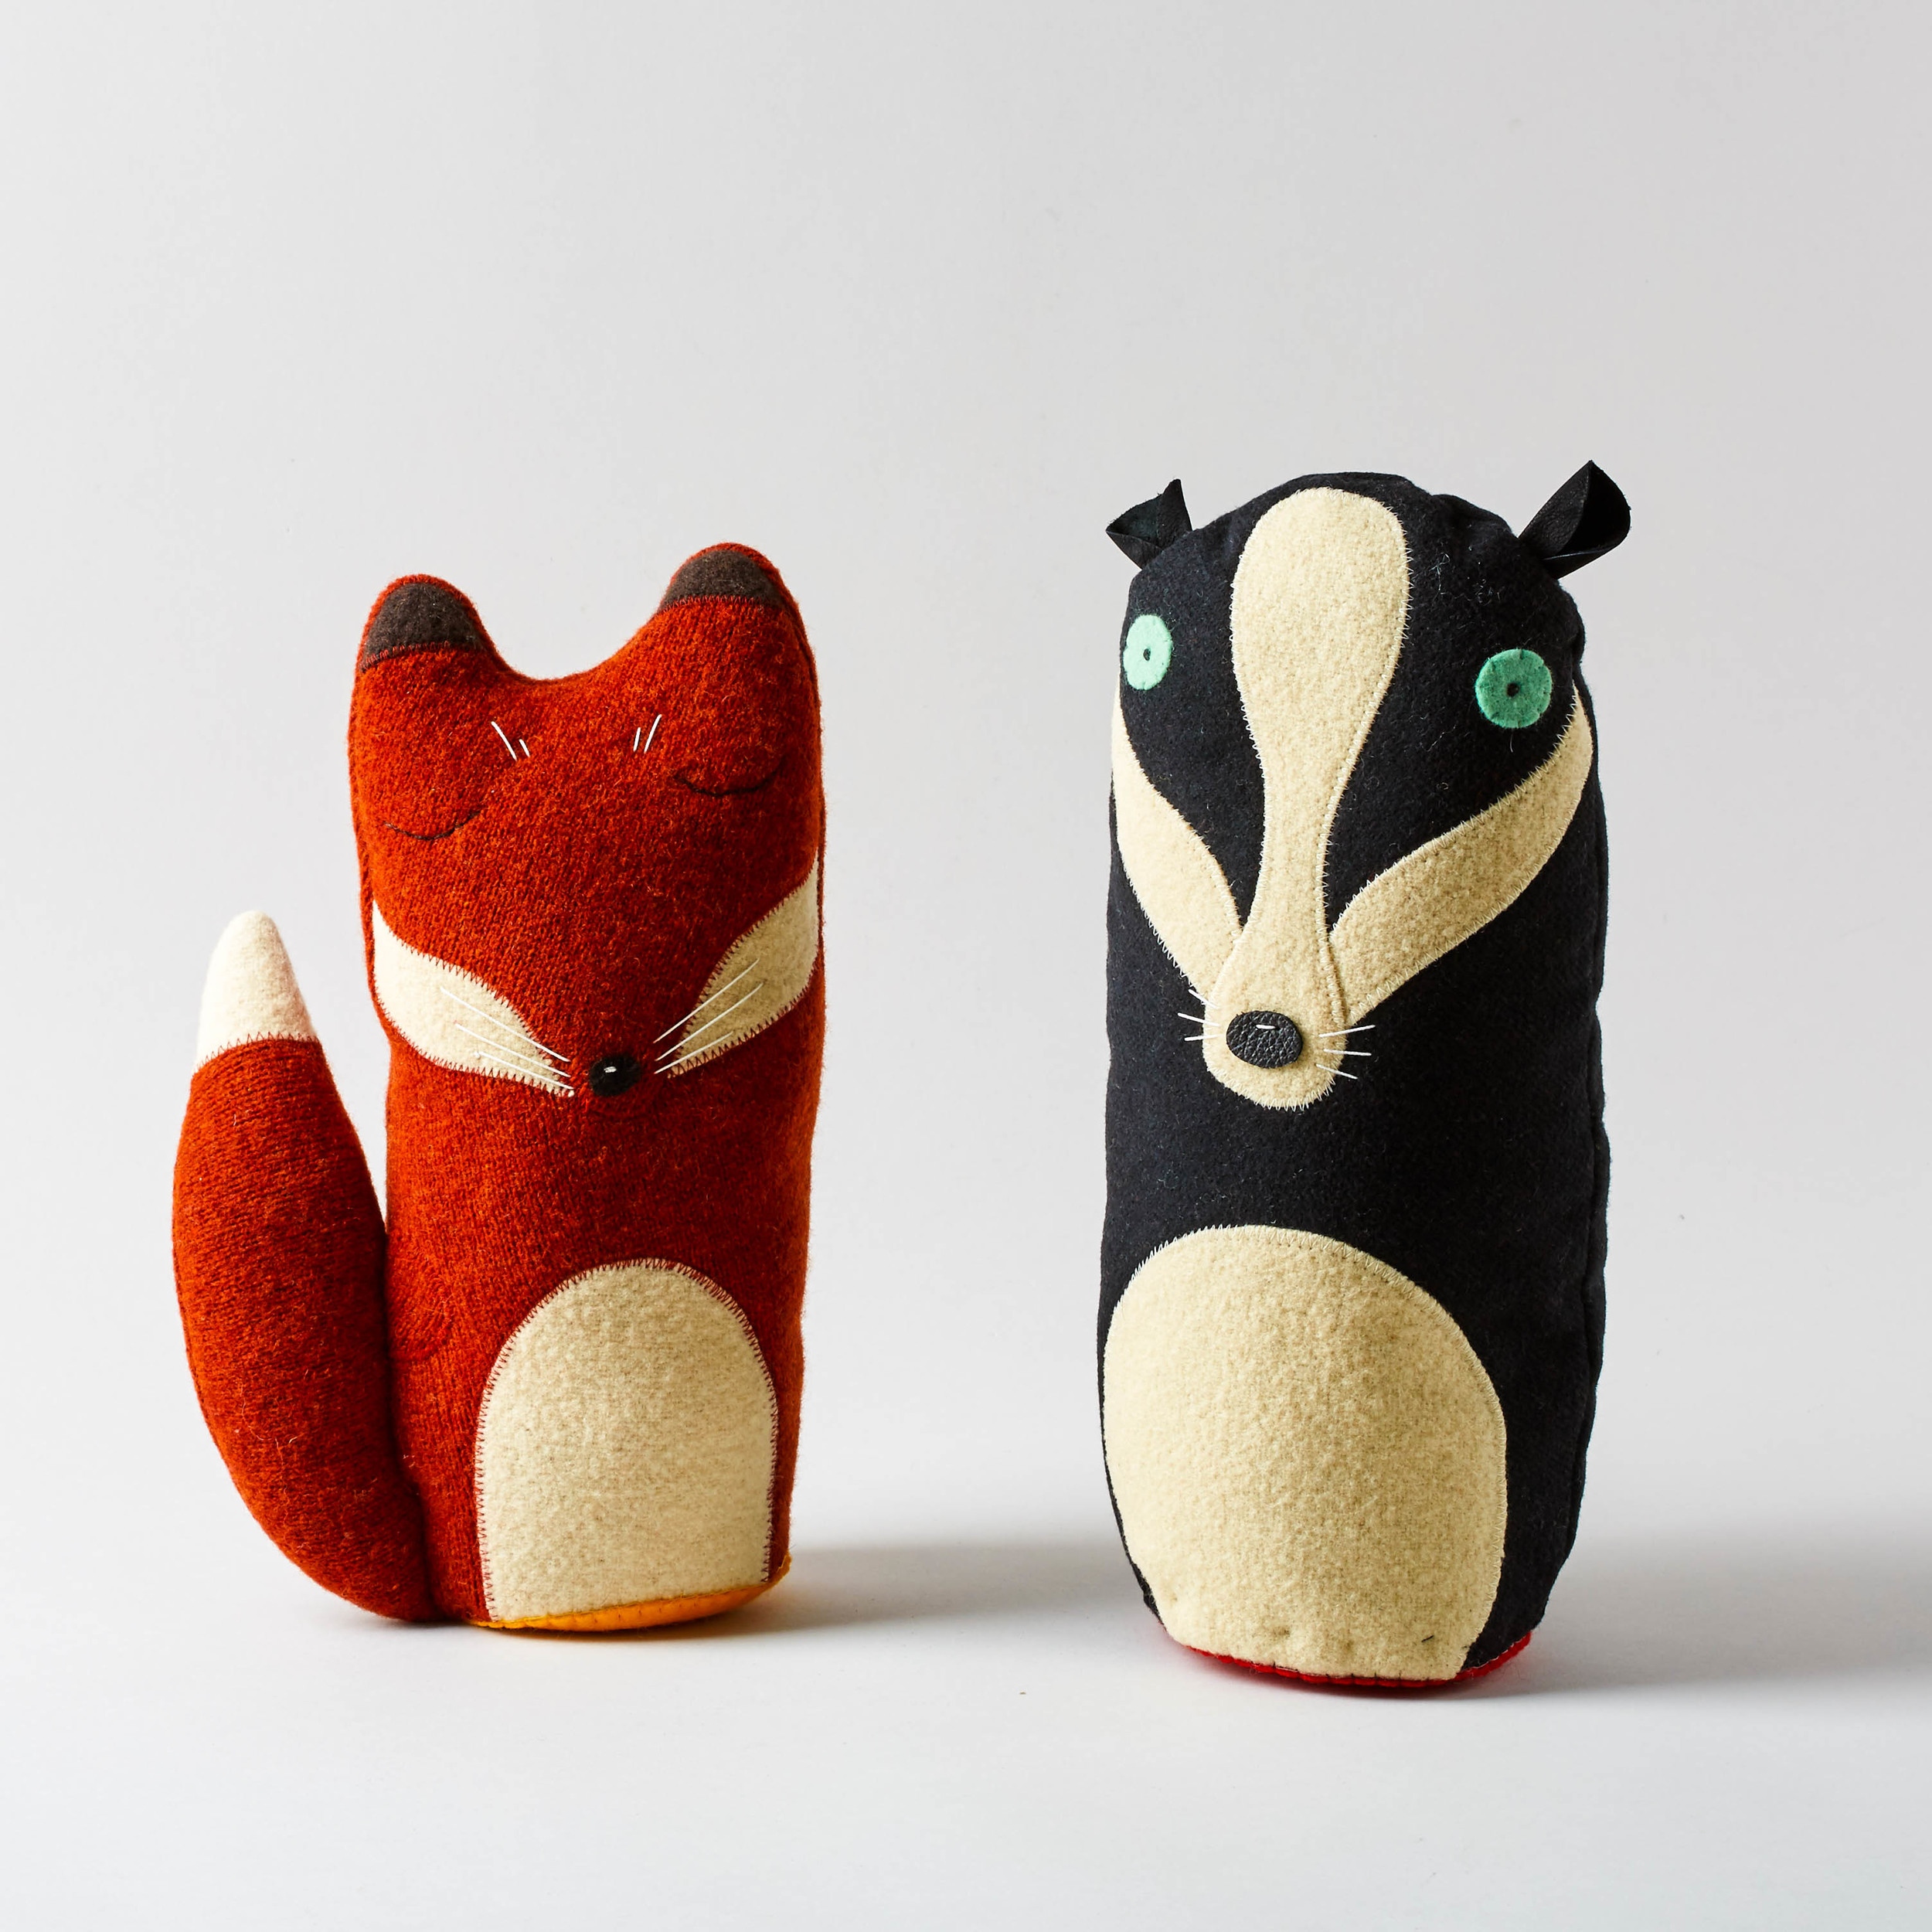 Mr Badger & Mr Fox  Wonderful creatures handmade by textile artist Mimi Soan. They are lightly weighted so they stand up tall.  £65 each